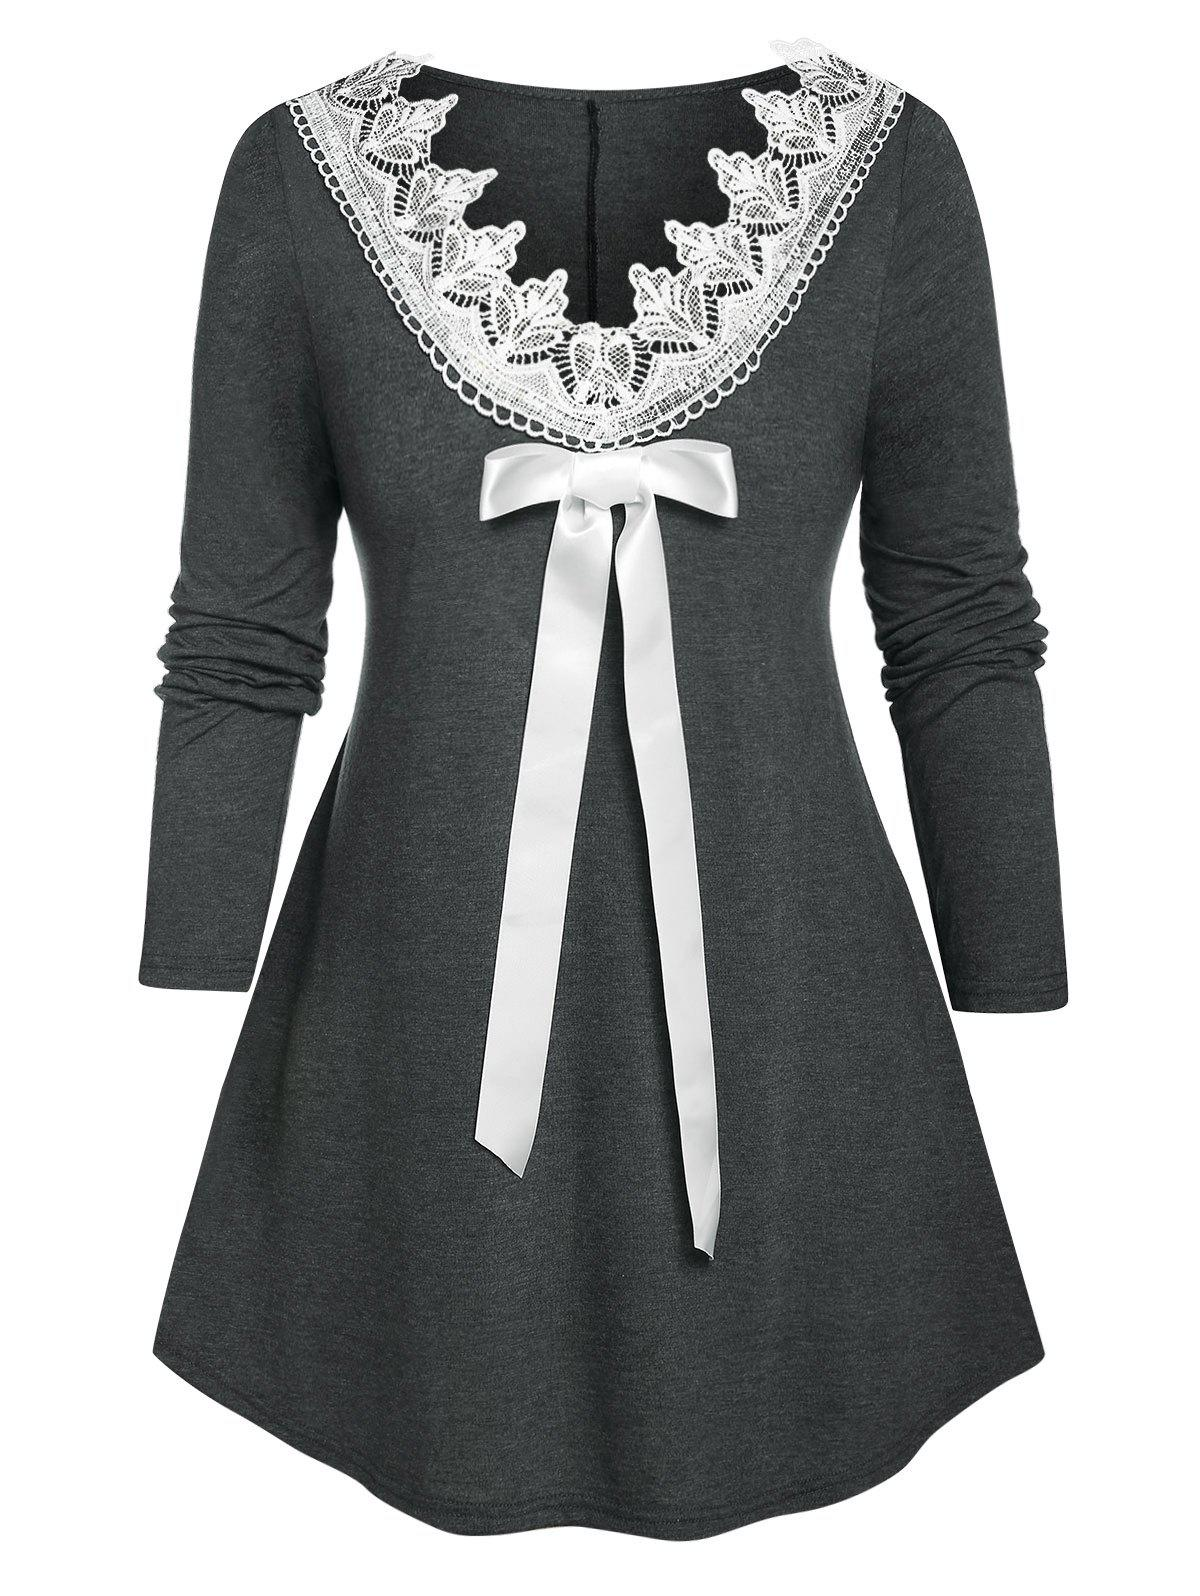 Plus Size Guipure Lace Bowknot Long Sleeve Tee - DARK SLATE GREY 5X